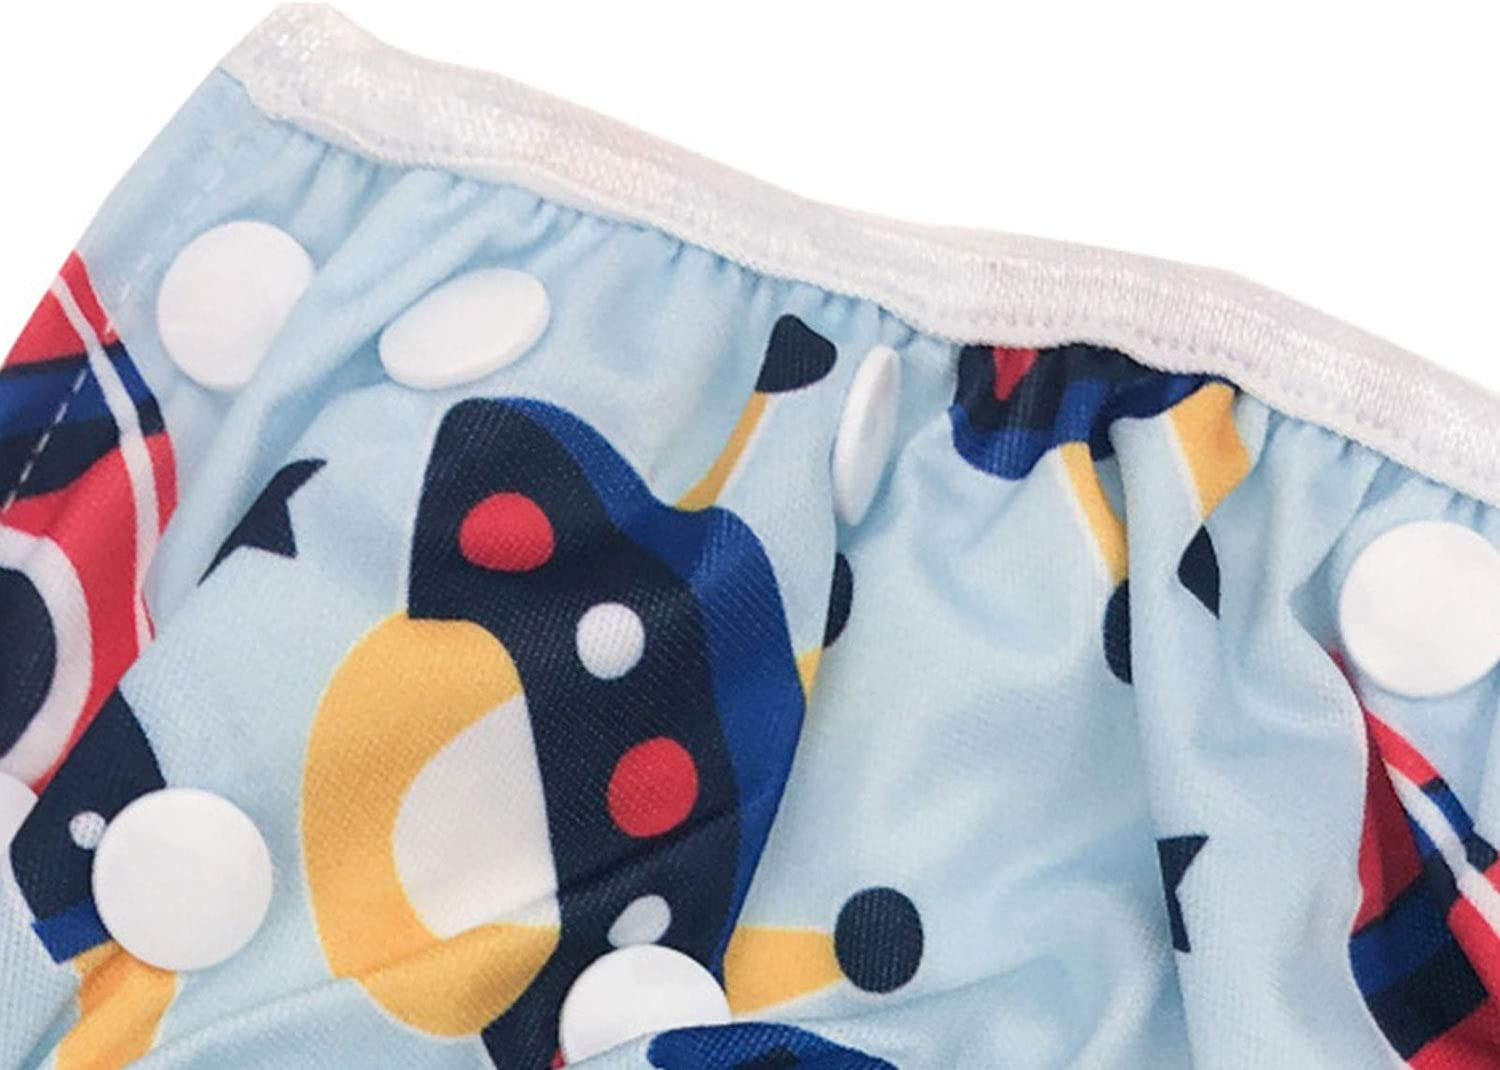 Zando Reusable Swim Diapers Adjustable for Boys and Girls Stylish Fits Waterproof Baby Swimming Diapers Pants